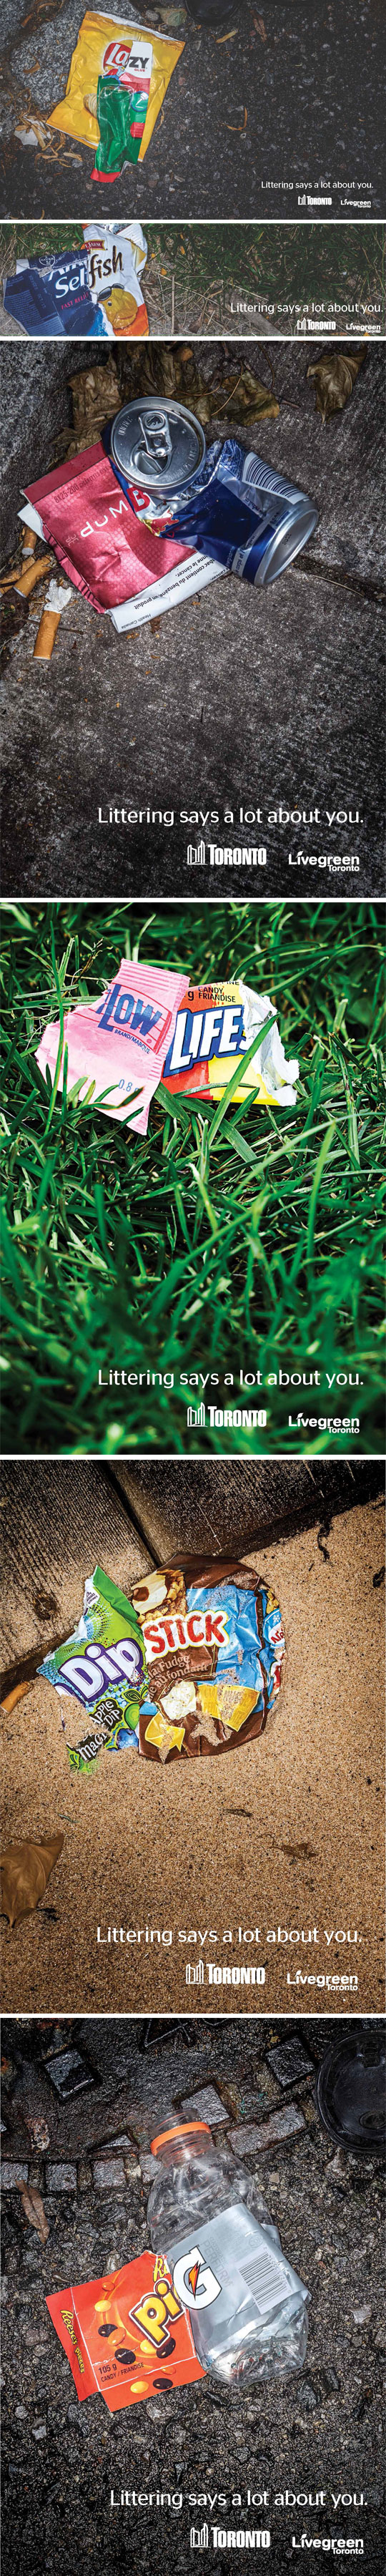 Littering Says A Lot About You